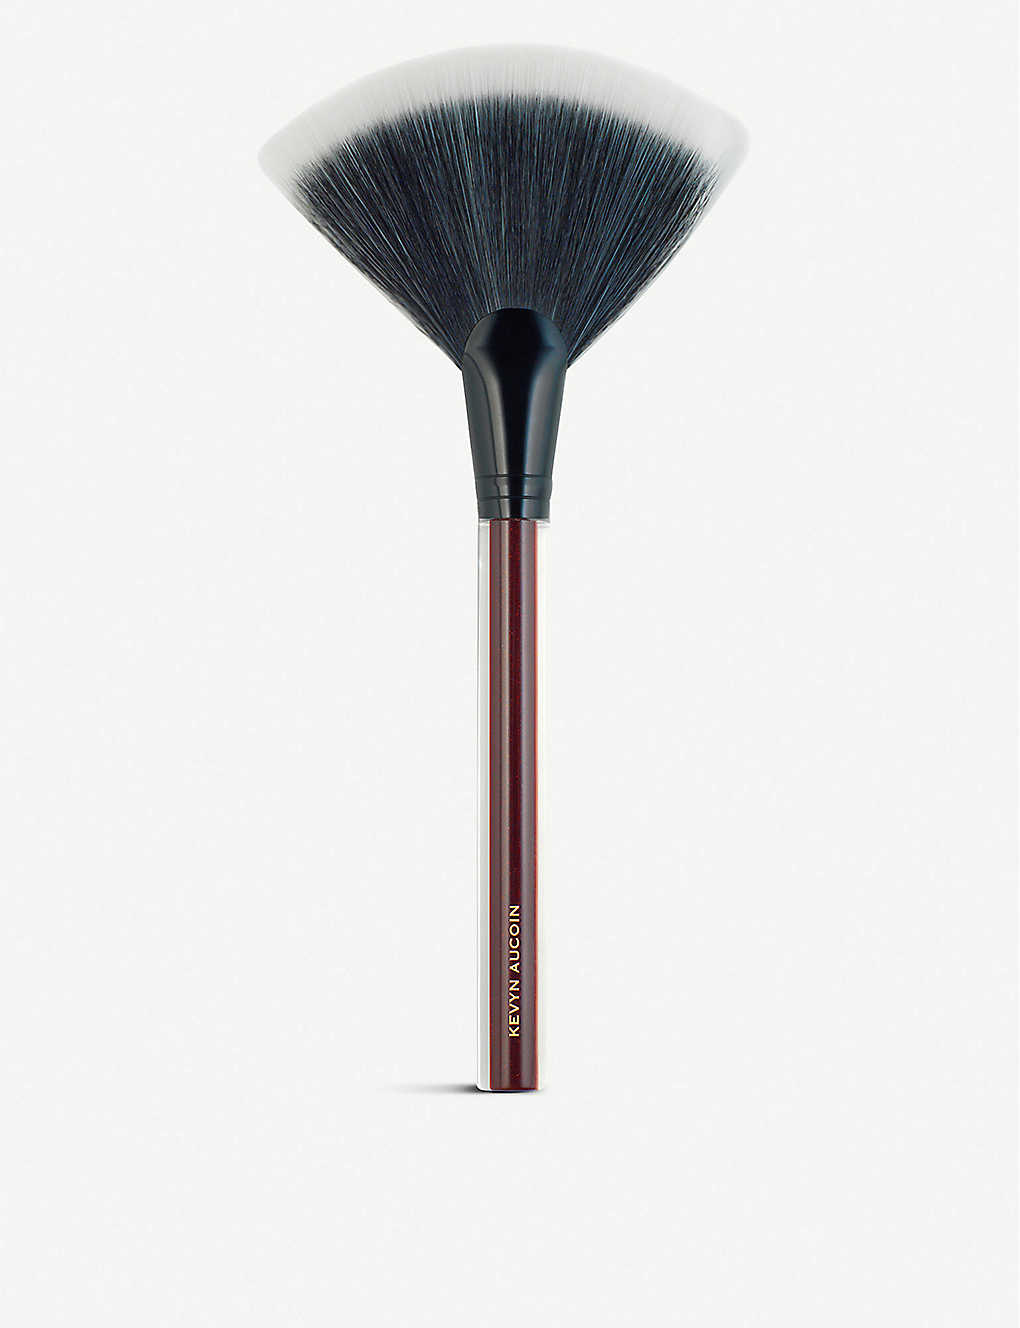 KEVYN AUCOIN: The Large Fan brush